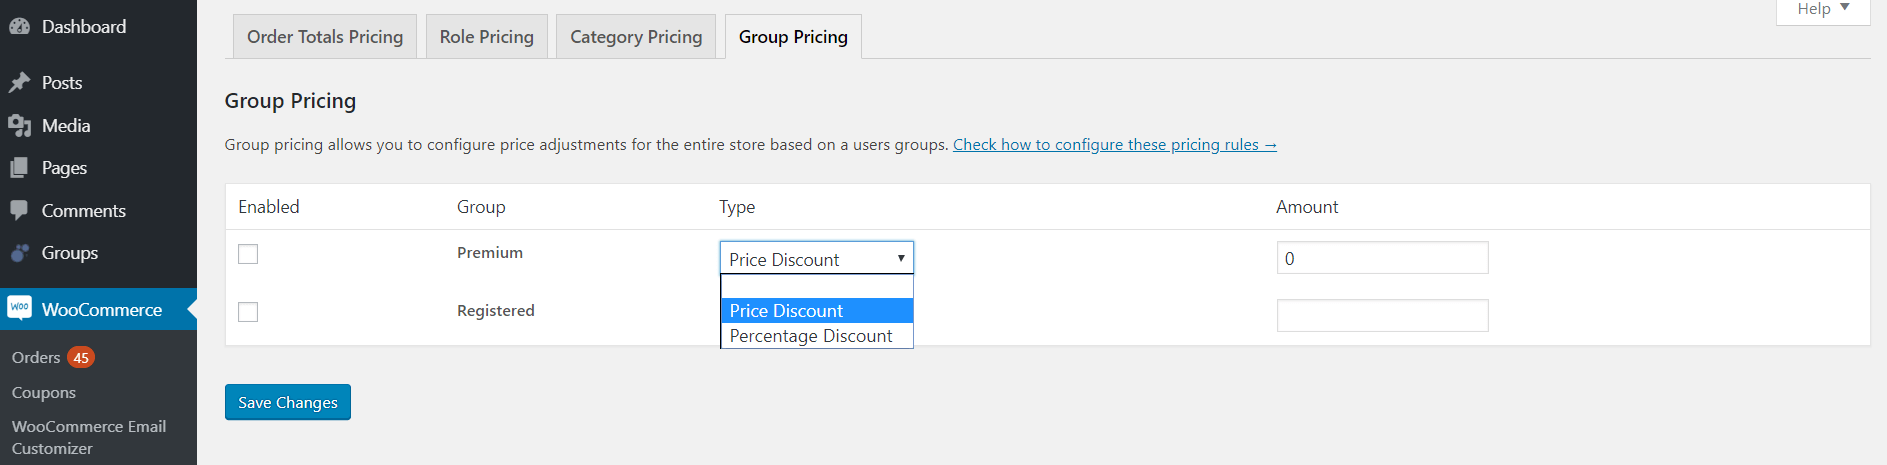 WooCommerce group pricing rule